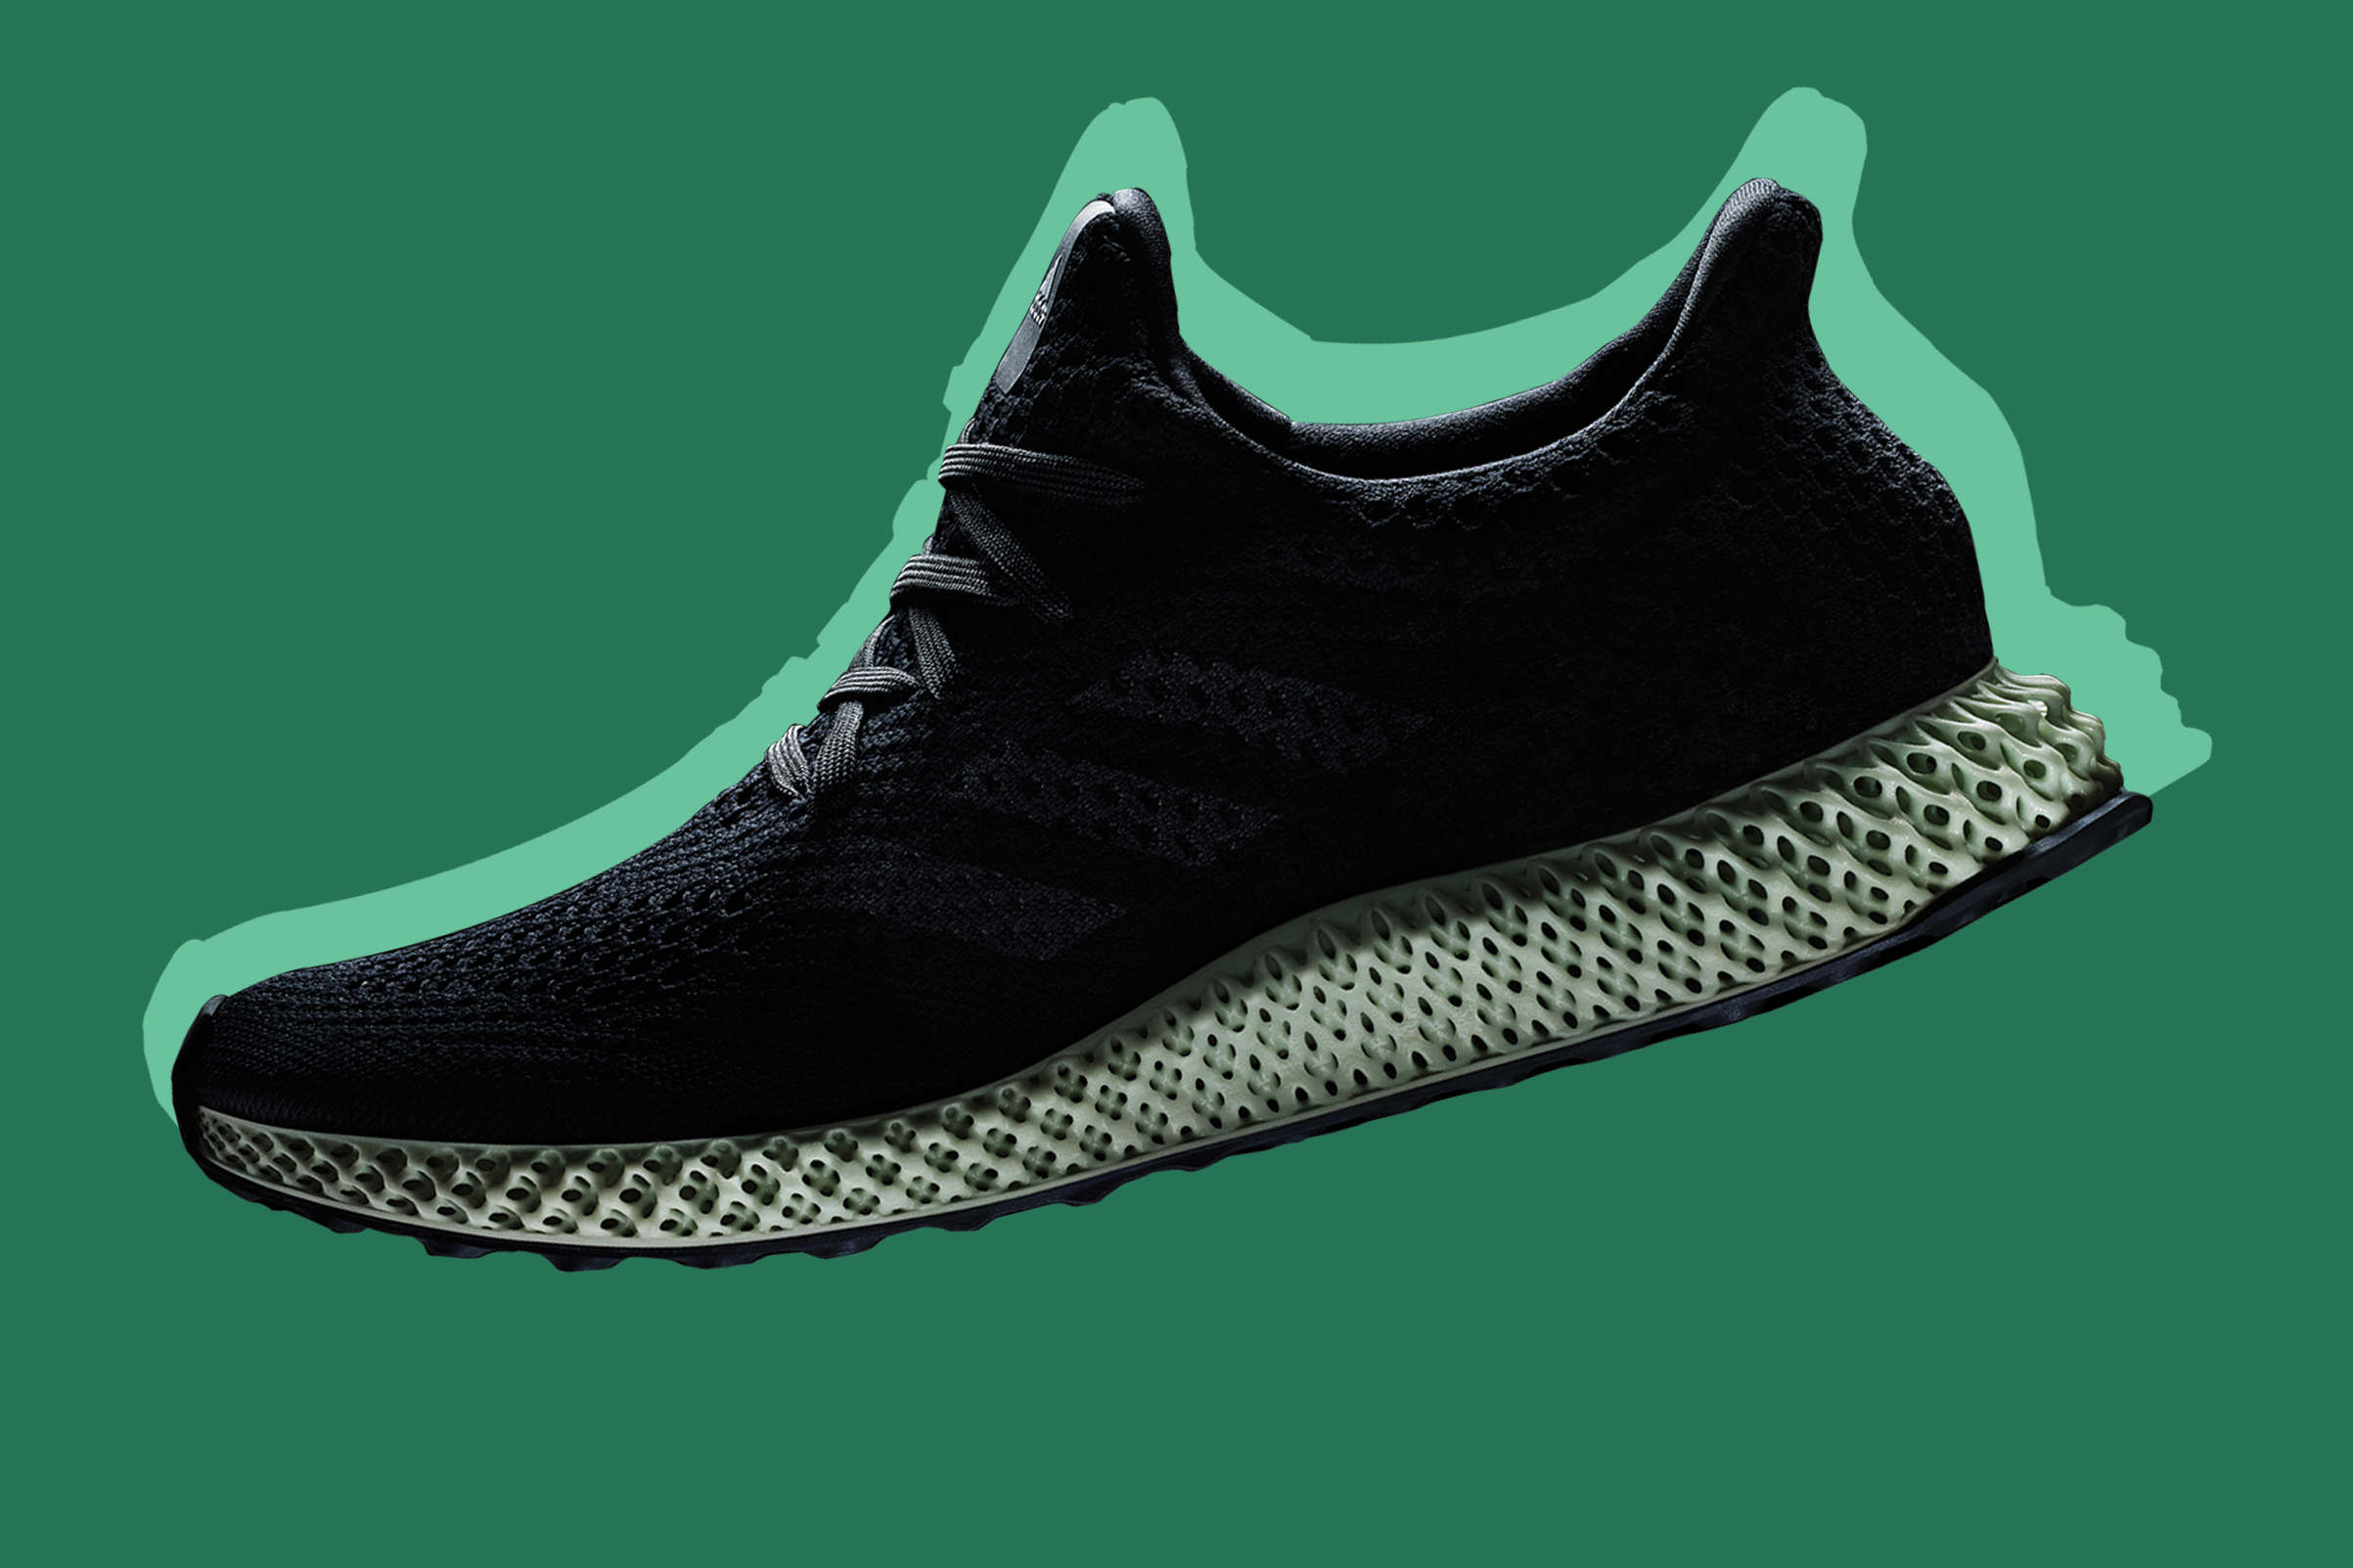 The Adidas Futurecraft 4D is one of the best inventions of 2017